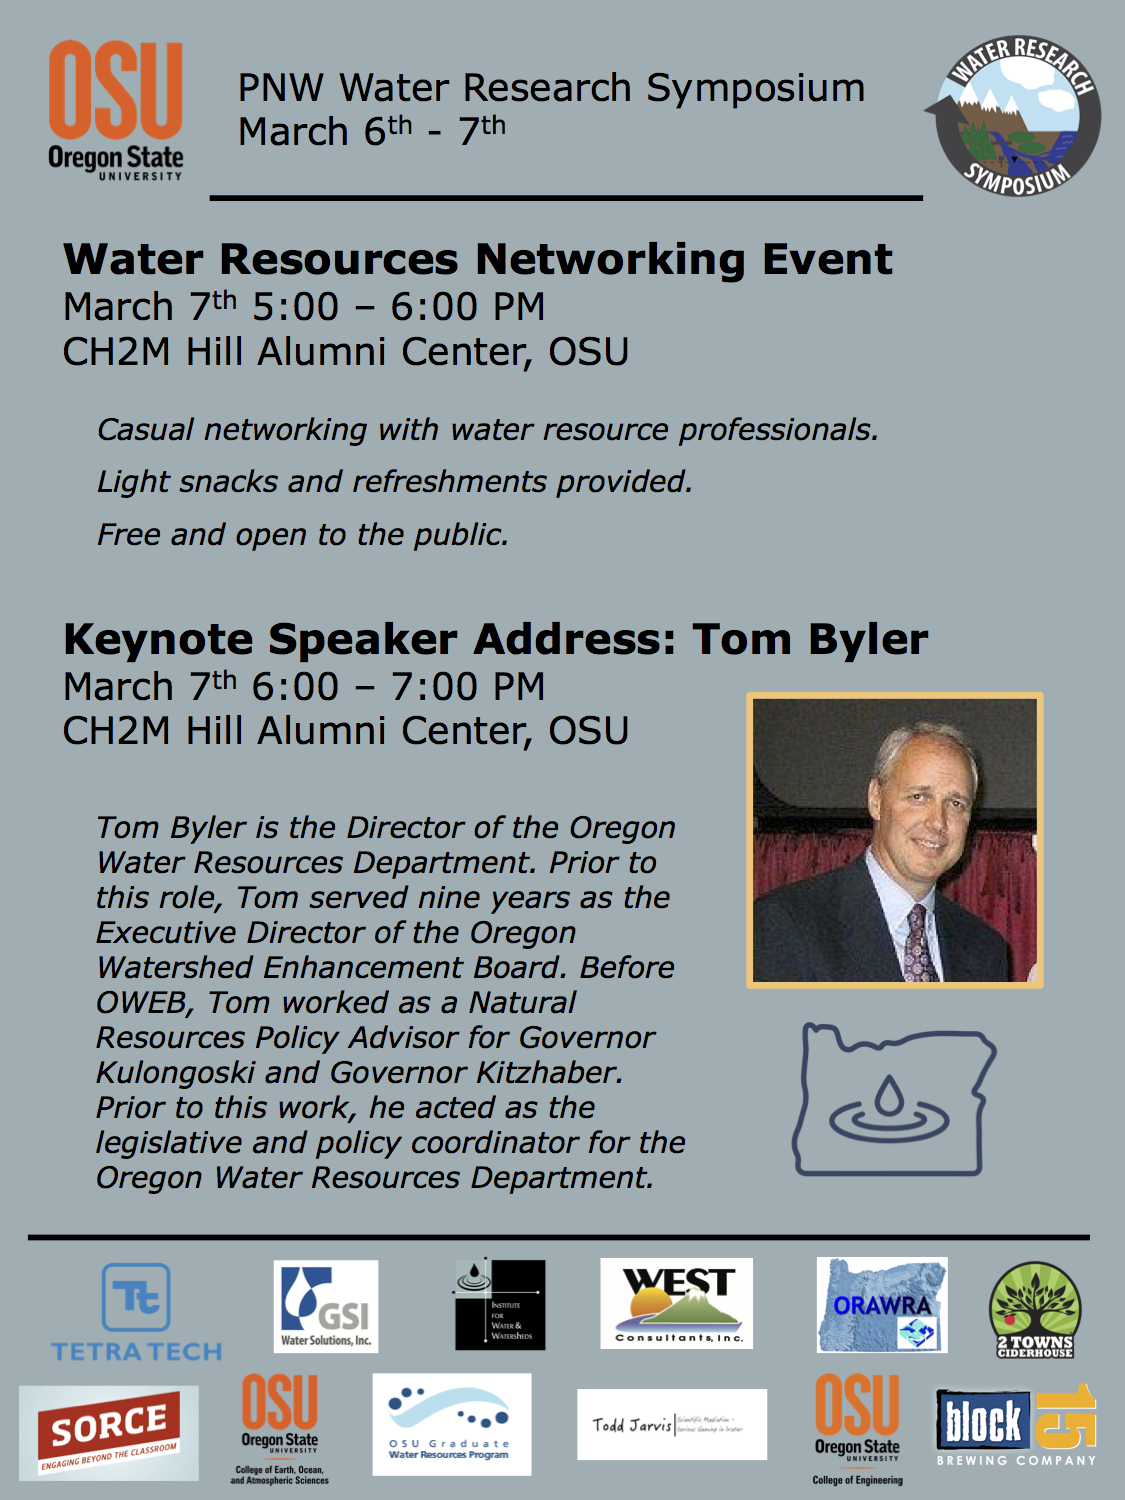 Netwoking an Keynote Flyer. March 7th 2017. Networking 5-6pm, Keynote Address by Tom Byler 6-7pm.  CH2M Hill Alumni Center